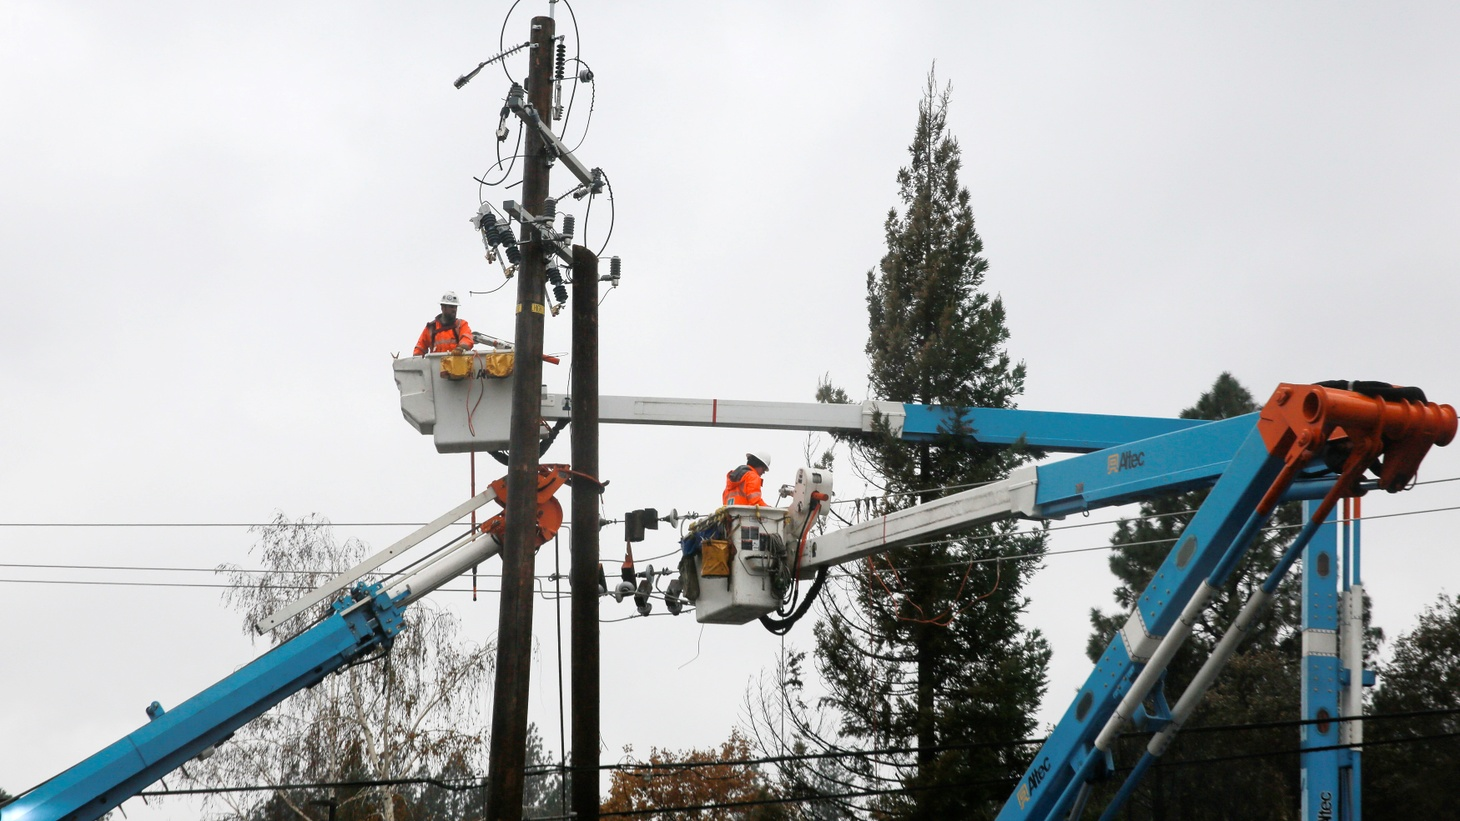 PG&E crew work on power lines to repair damage caused by the Camp Fire in Paradise, California, U.S. November 21, 2018.